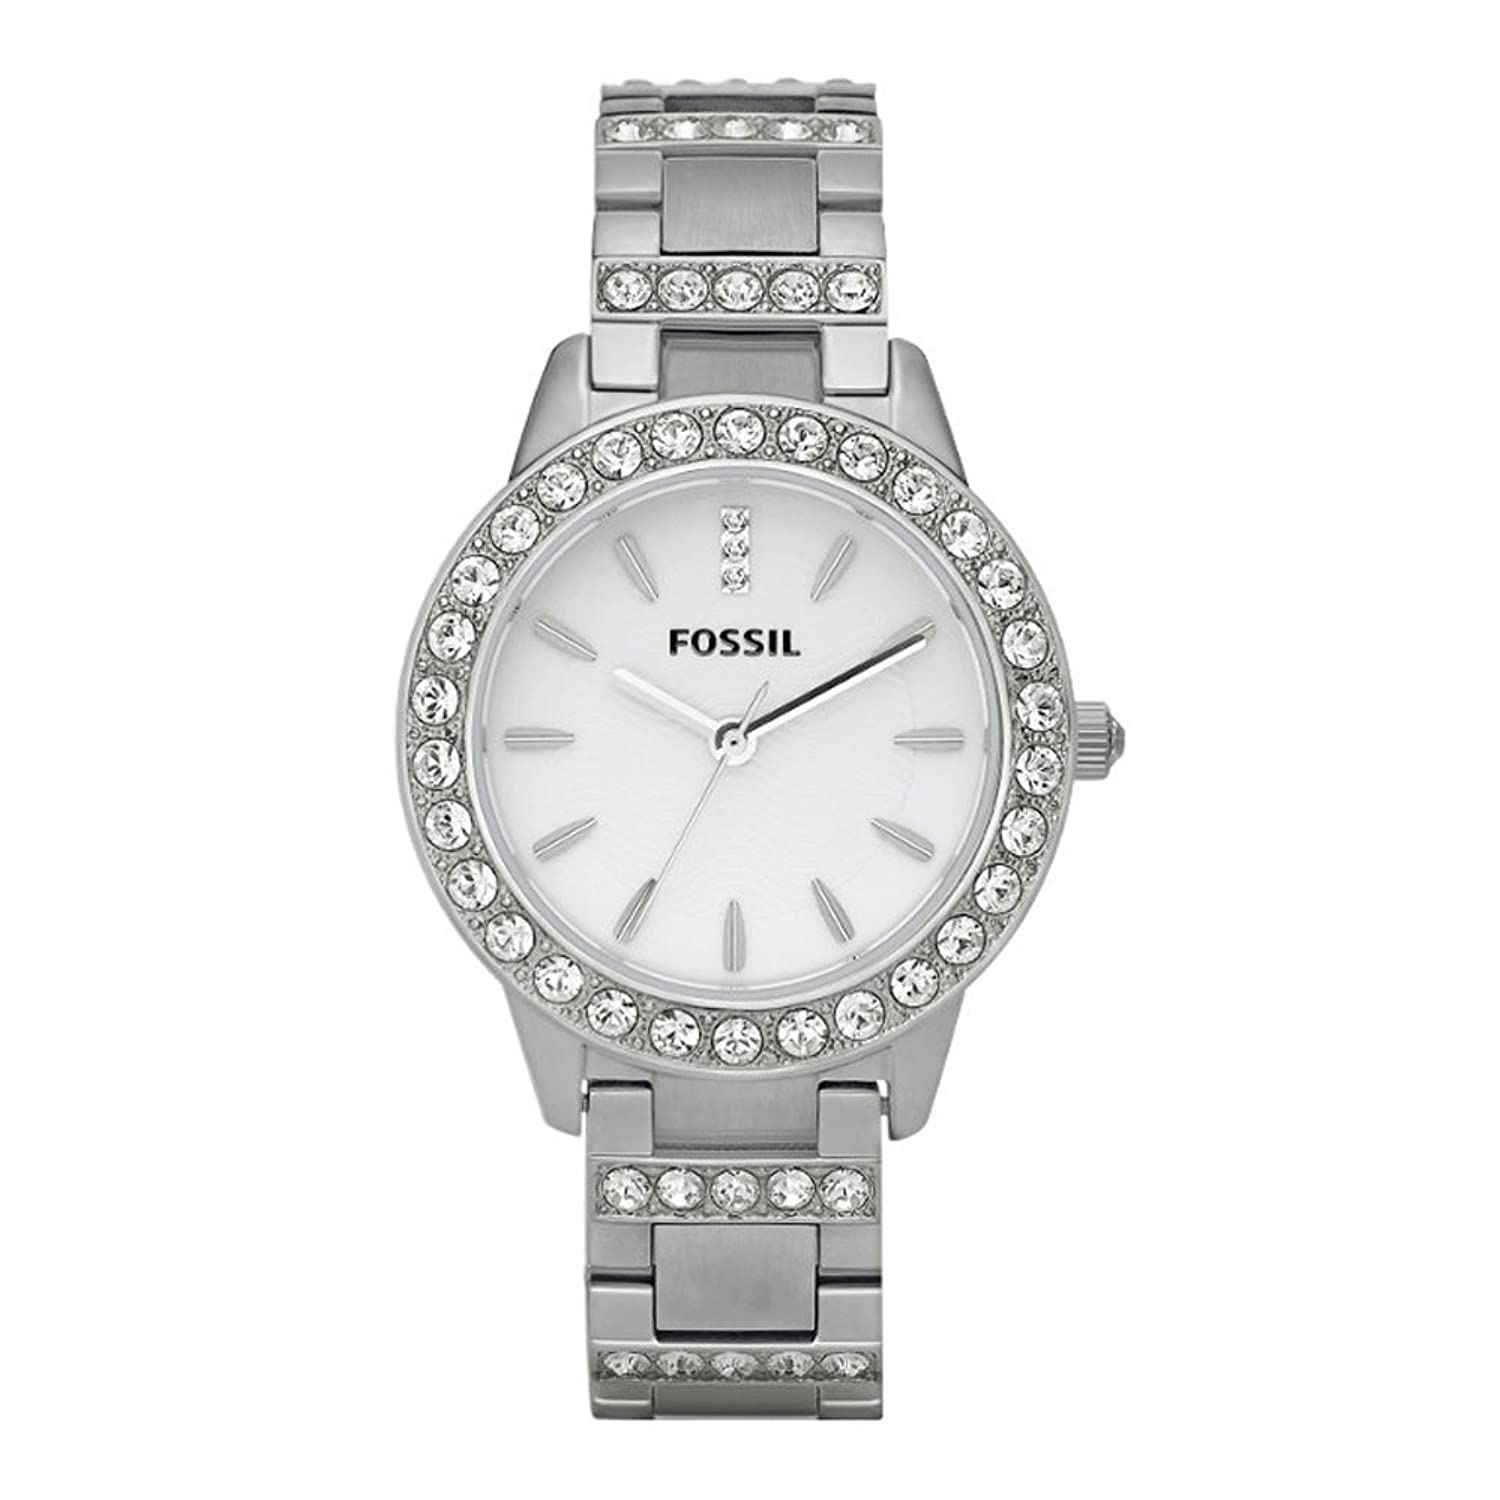 Fossil Analog White Dial Women Watch on Heavenkart